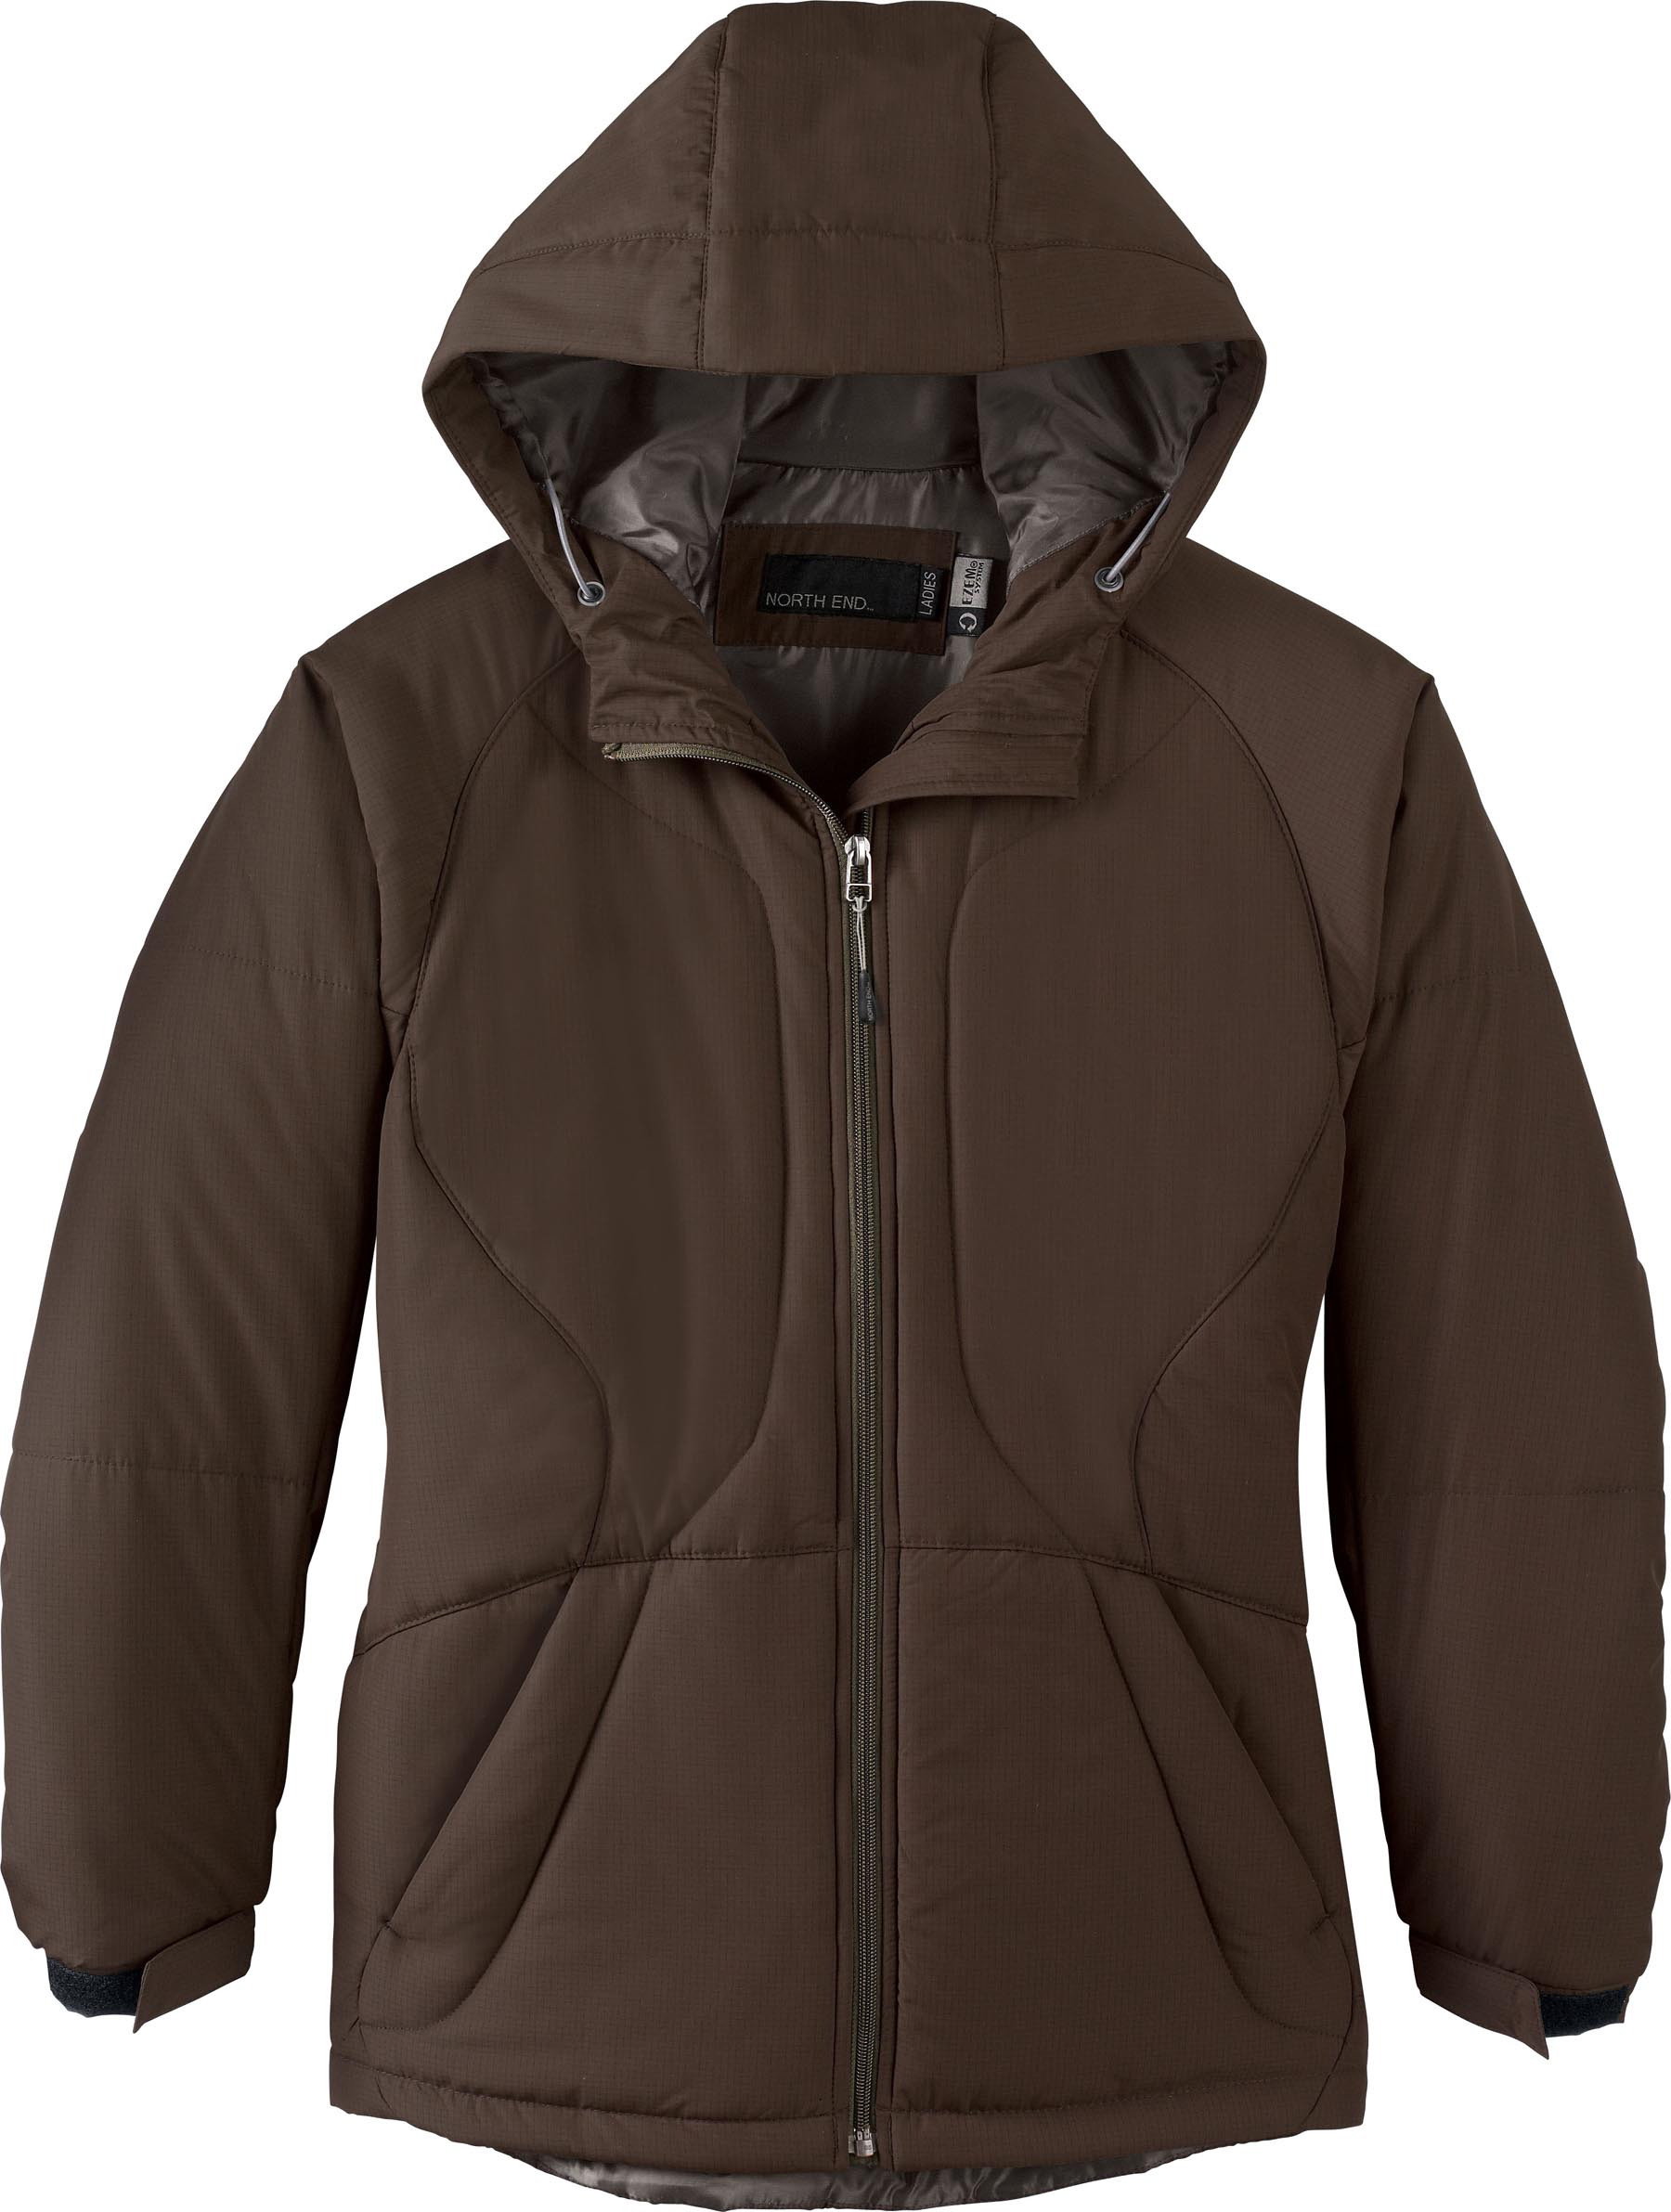 Ash City UTK 3 Warm.Logik 78082 - Ladies Polyester Ripstop Insulated Jacket With Hood